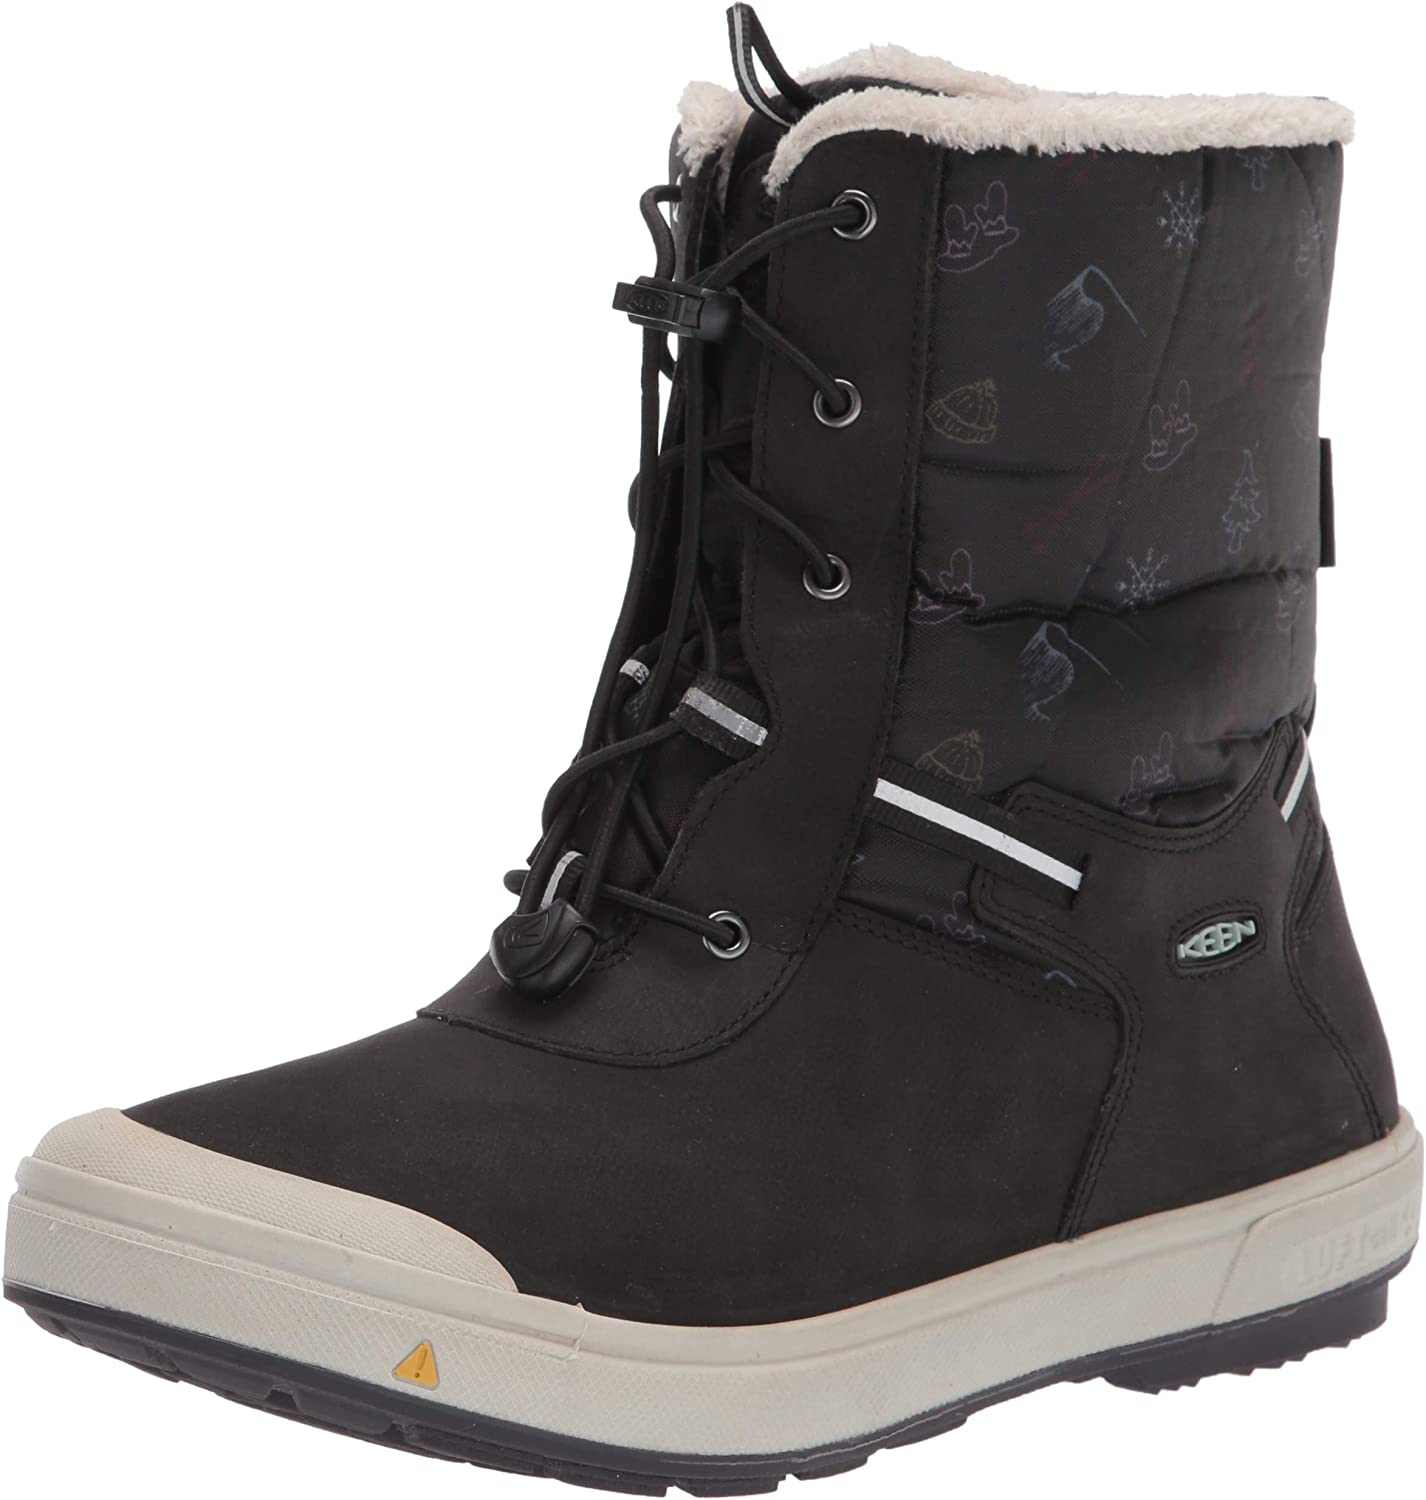 KEEN Kids' All stores are sold Kelsa Tall Snow Boot Quantity limited Wp